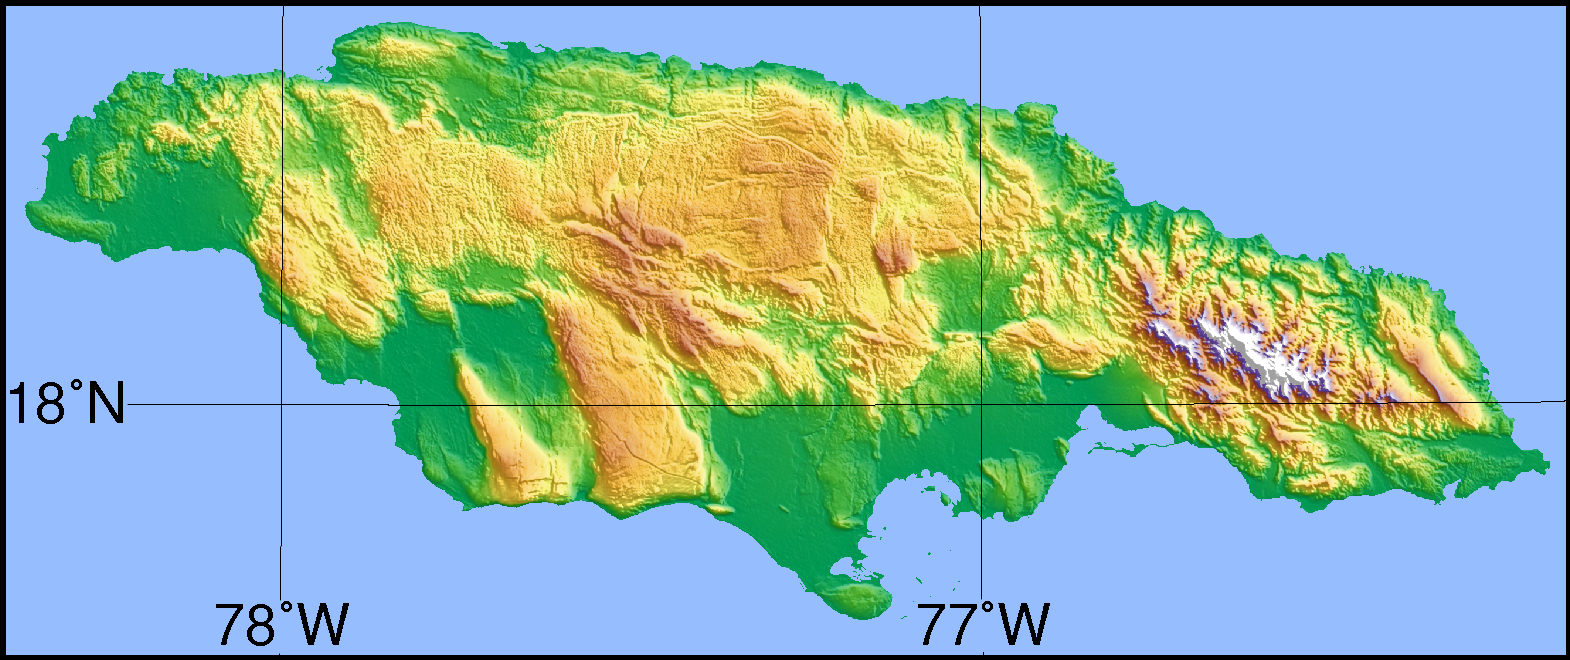 File:Simple topographic map of Jamaica.png - Wikimedia Commons